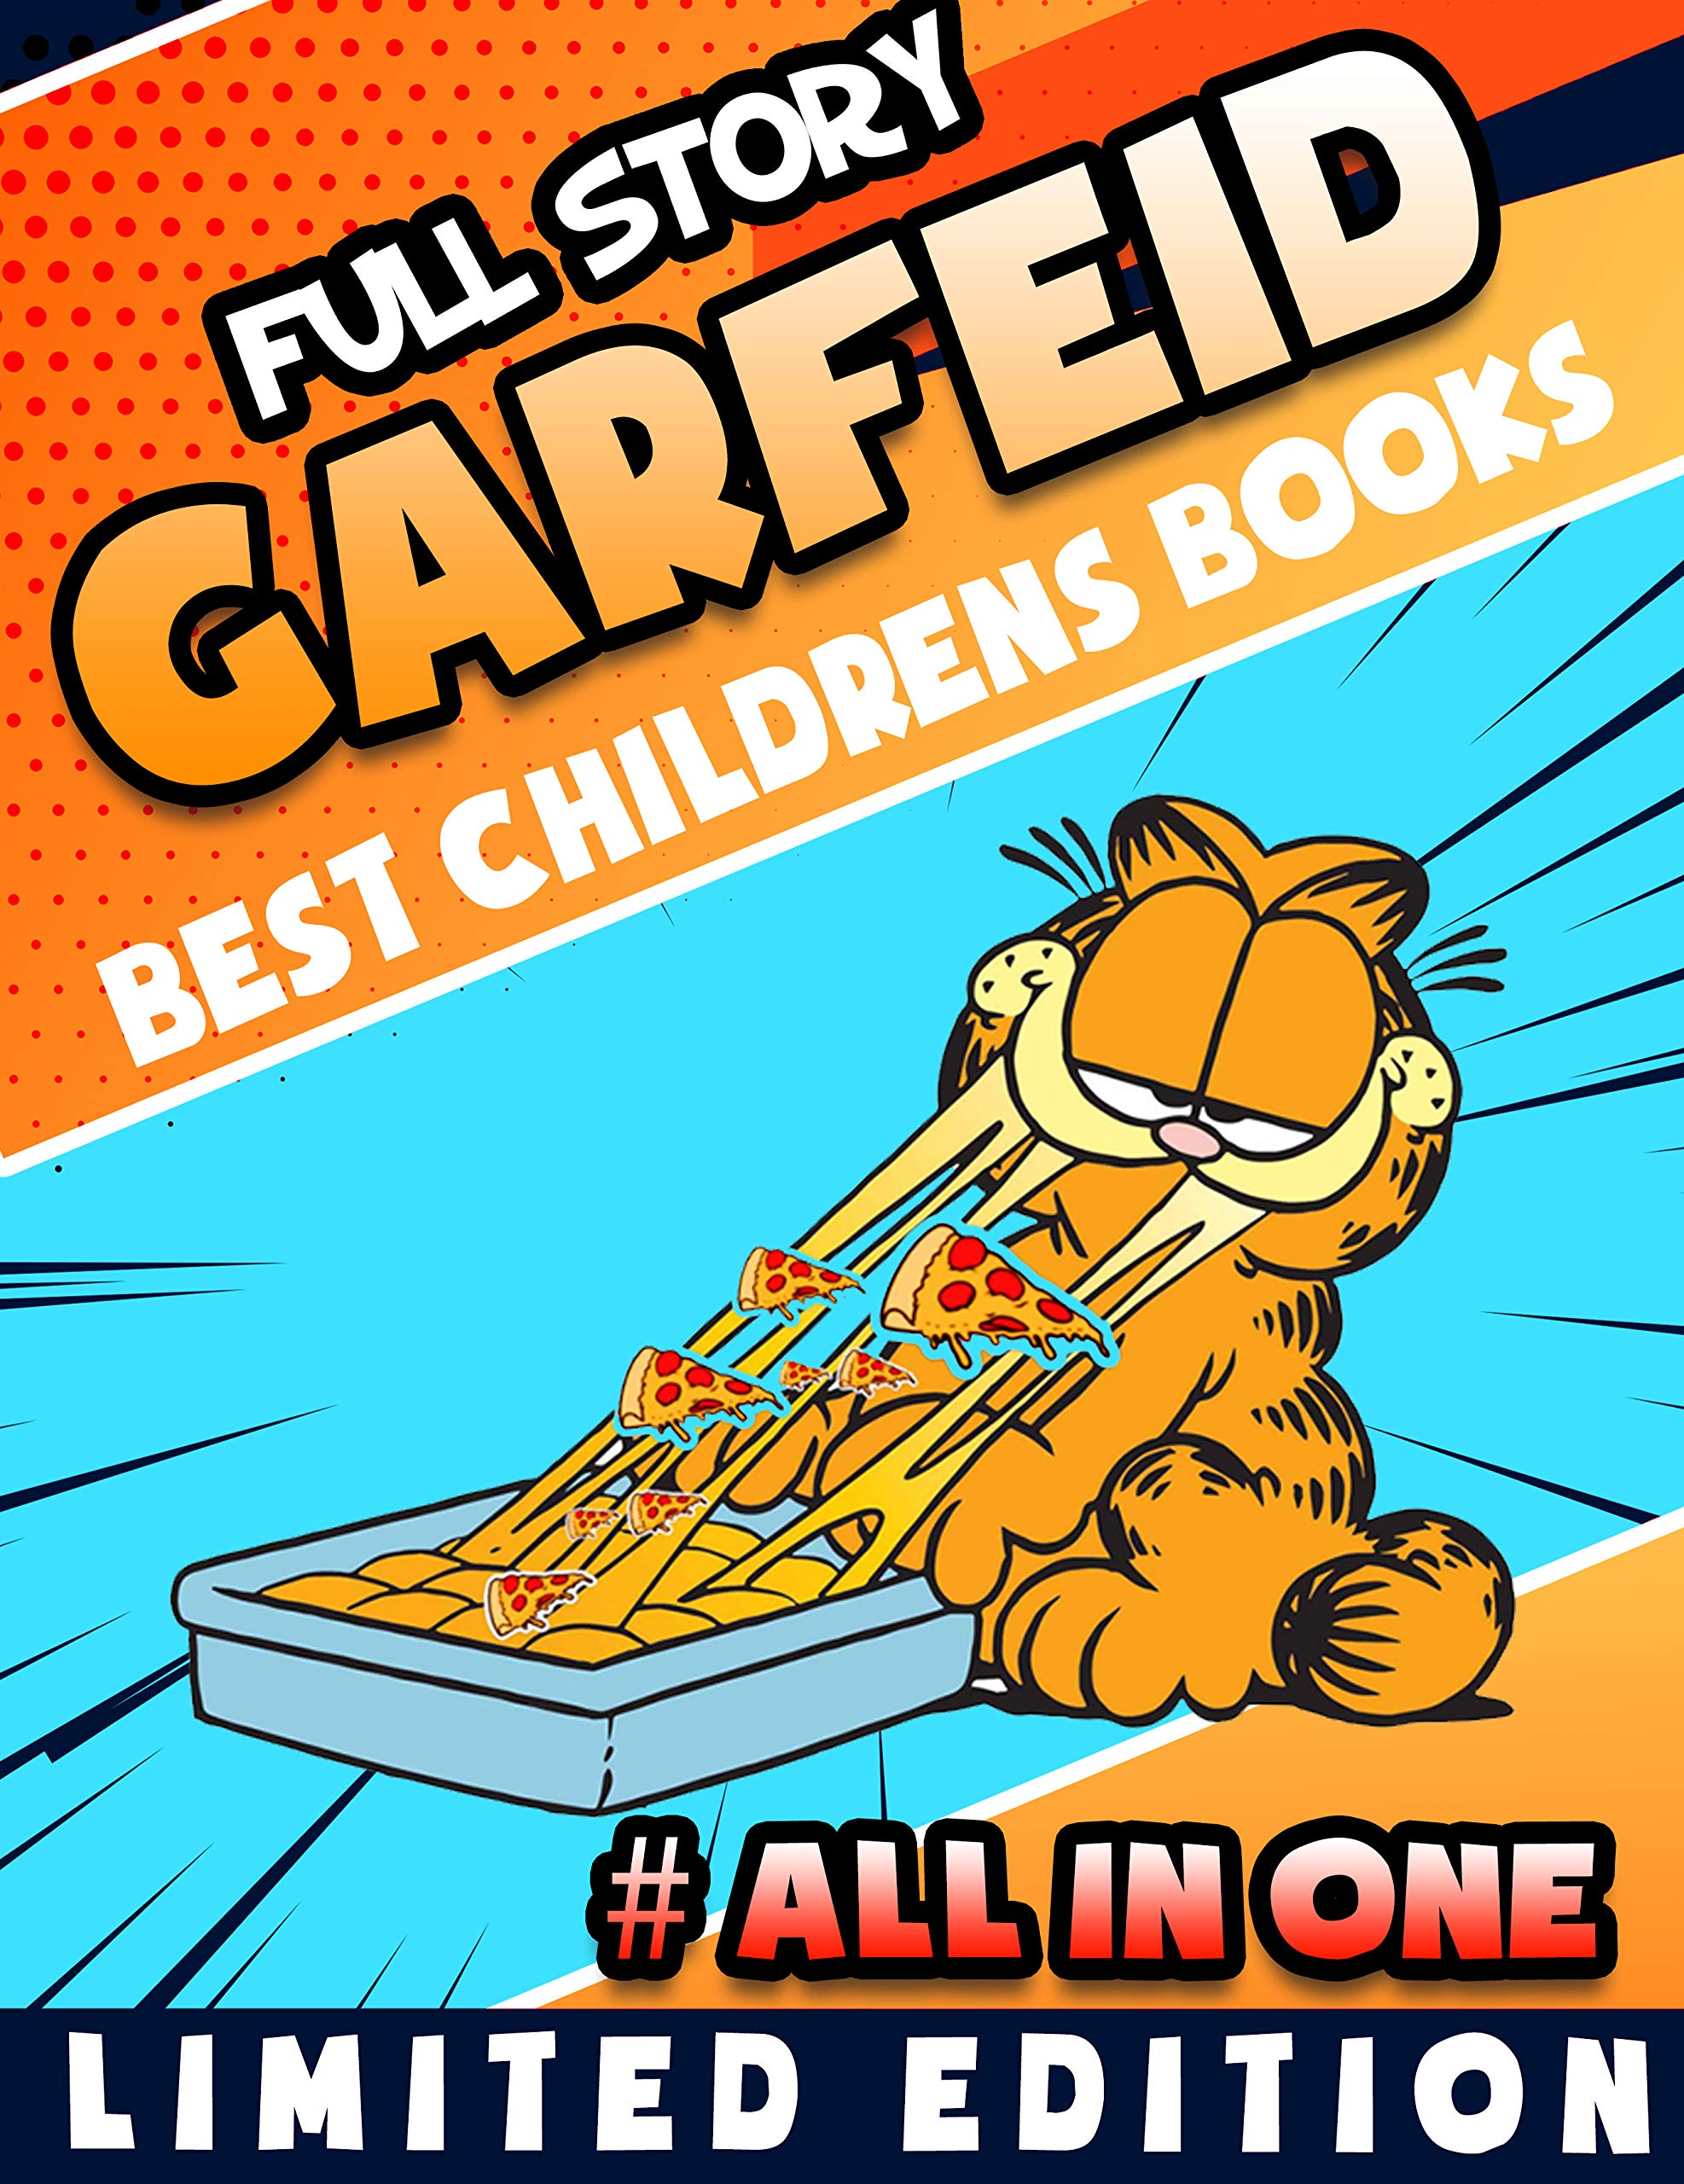 Full Story Best Childrens Books Garfield Limited Edition Completed Series: Full Garfield All in One Edition